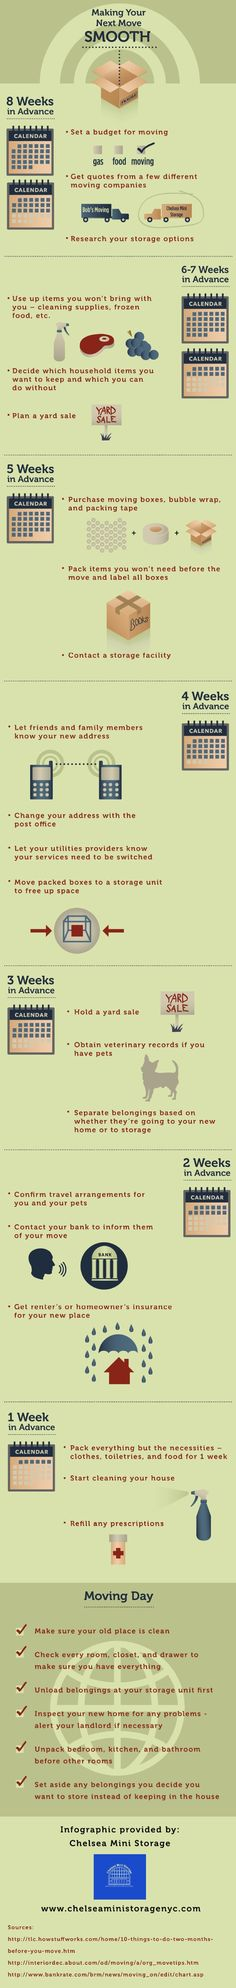 Planning a move should begin approximately 8 weeks before the actual moving date! During this time, it's important to set a moving budget, get quotes from moving companies, and research storage options. Learn more by clicking on this infographic.